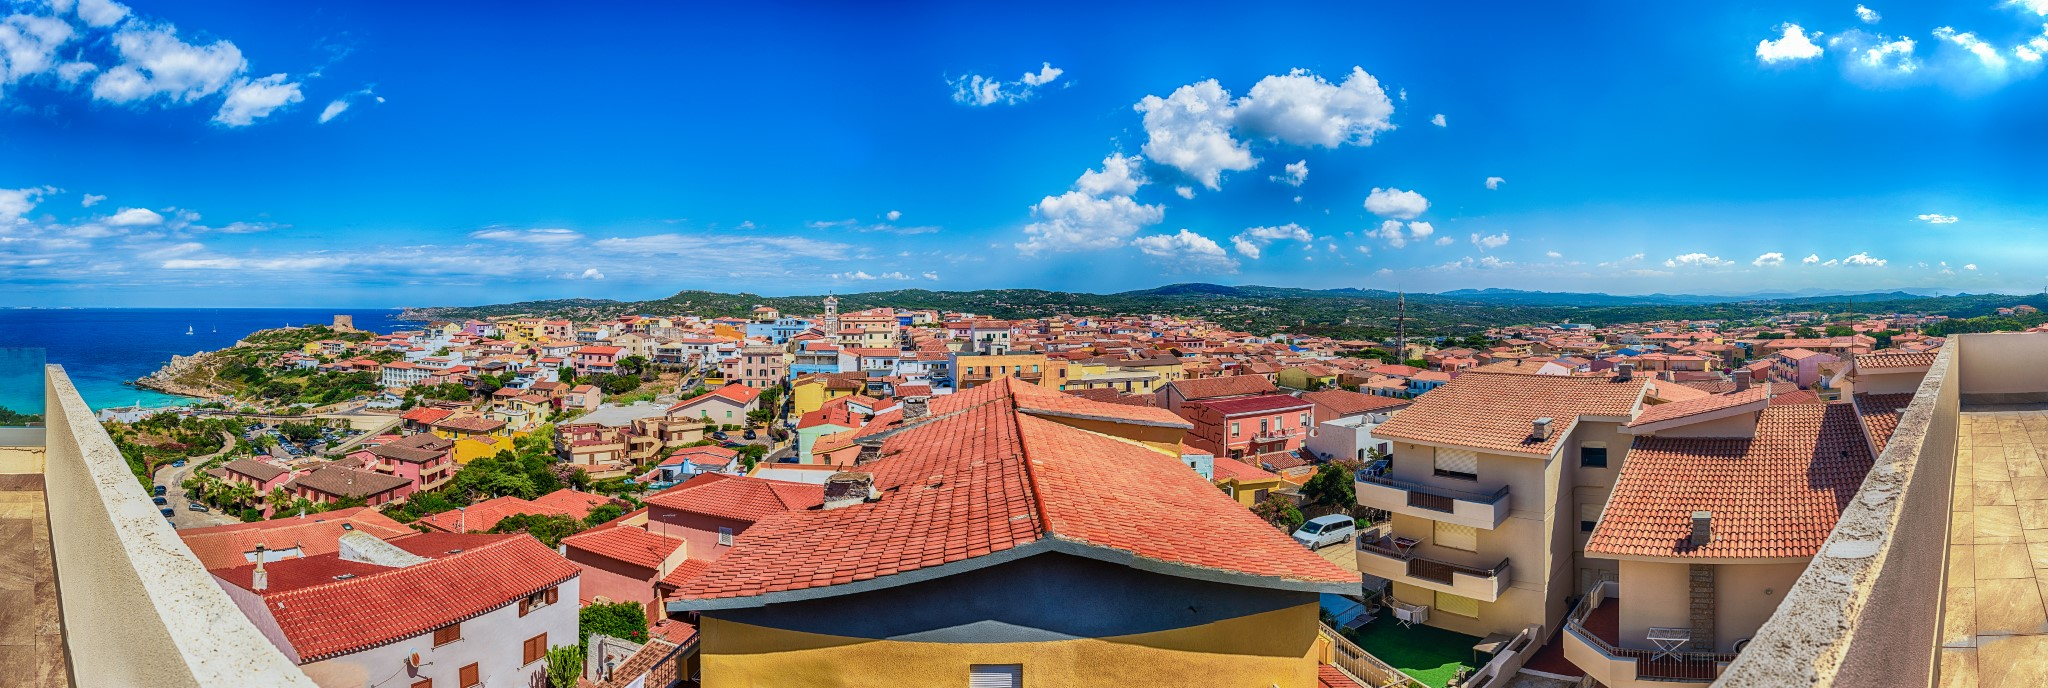 Scenic aerial view over the town of Santa Teresa Gallura, located on the northern tip of Sardinia, on the Strait of Bonifacio, in the province of Sassari, Italy